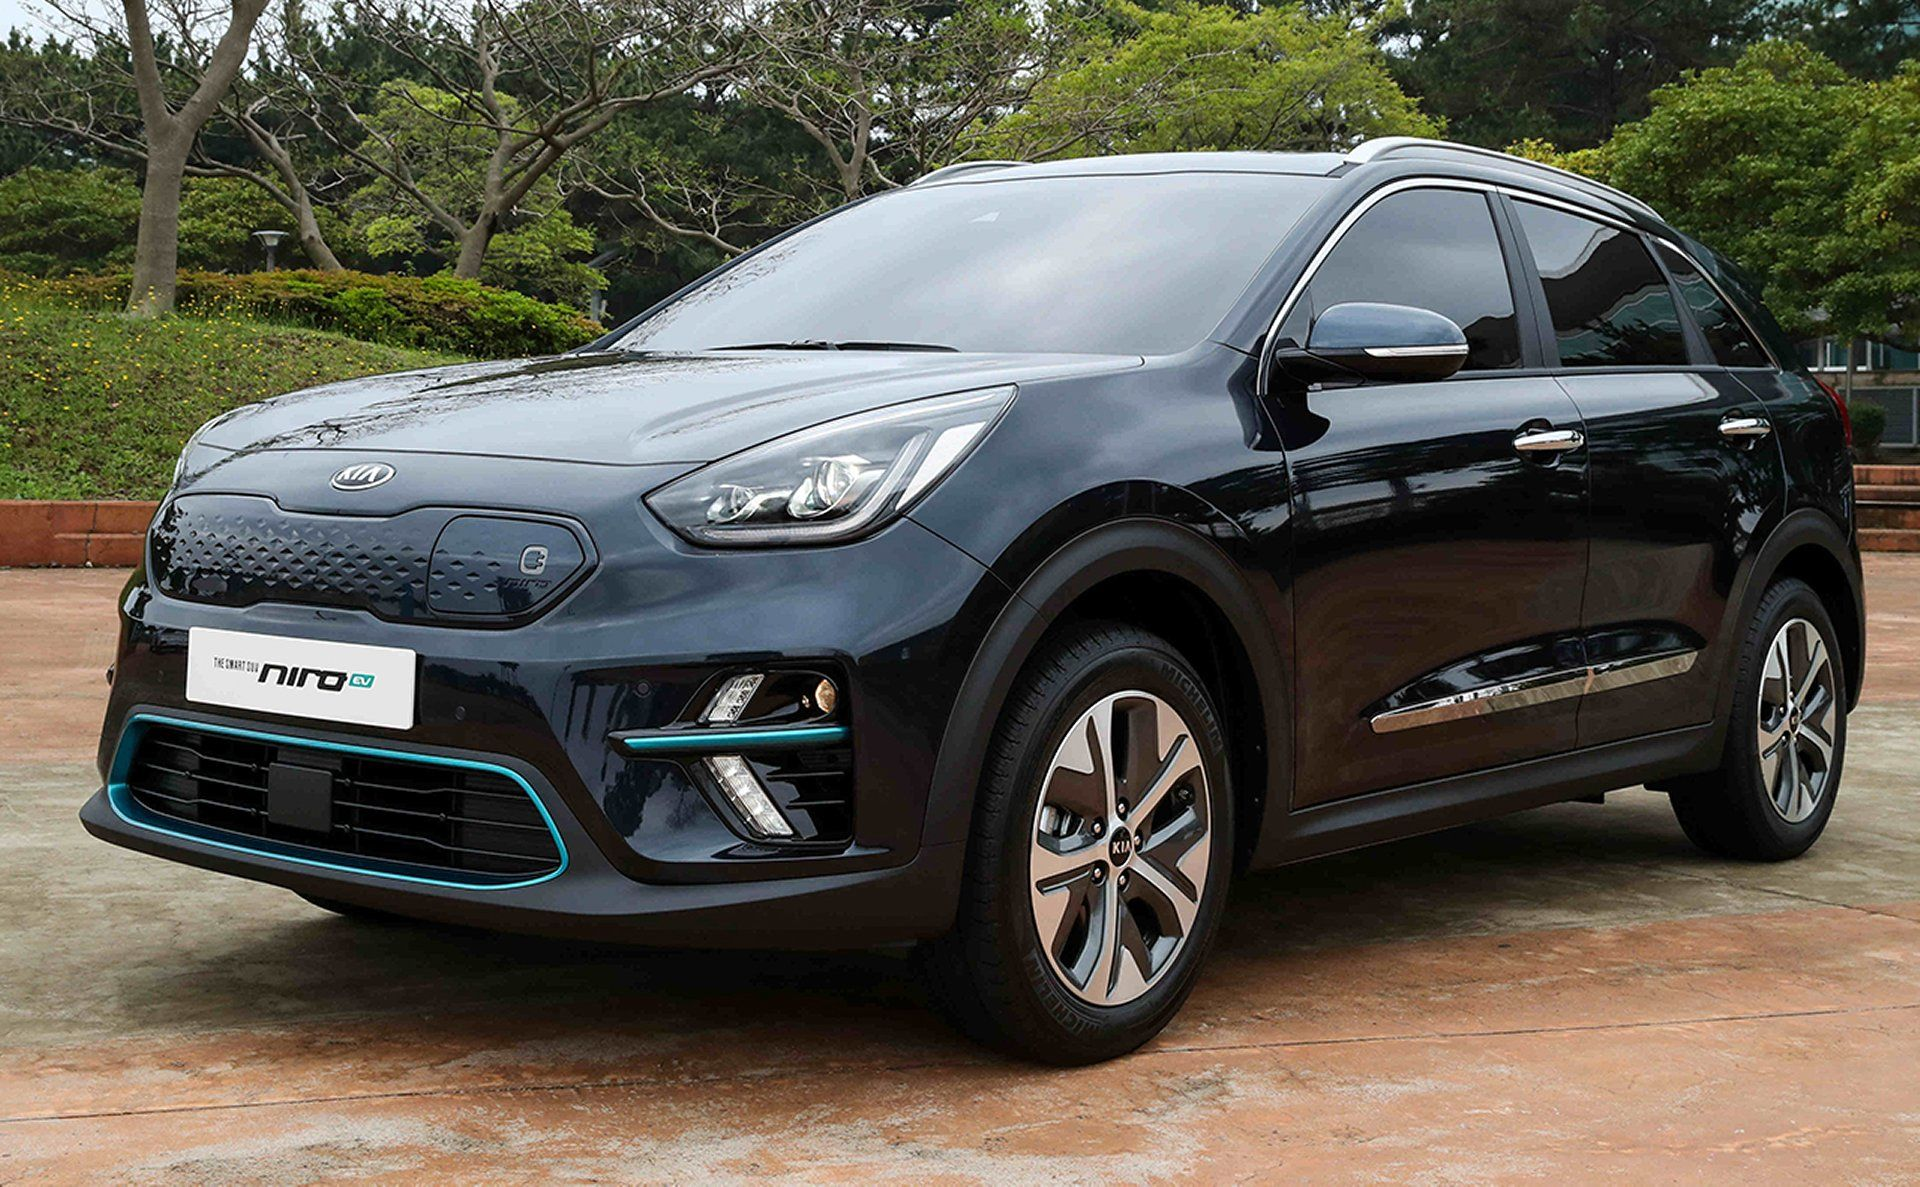 Kia Niro Ev Test Drive Proves Range Is Indeed Impressive Kia Fuel Economy New Cars